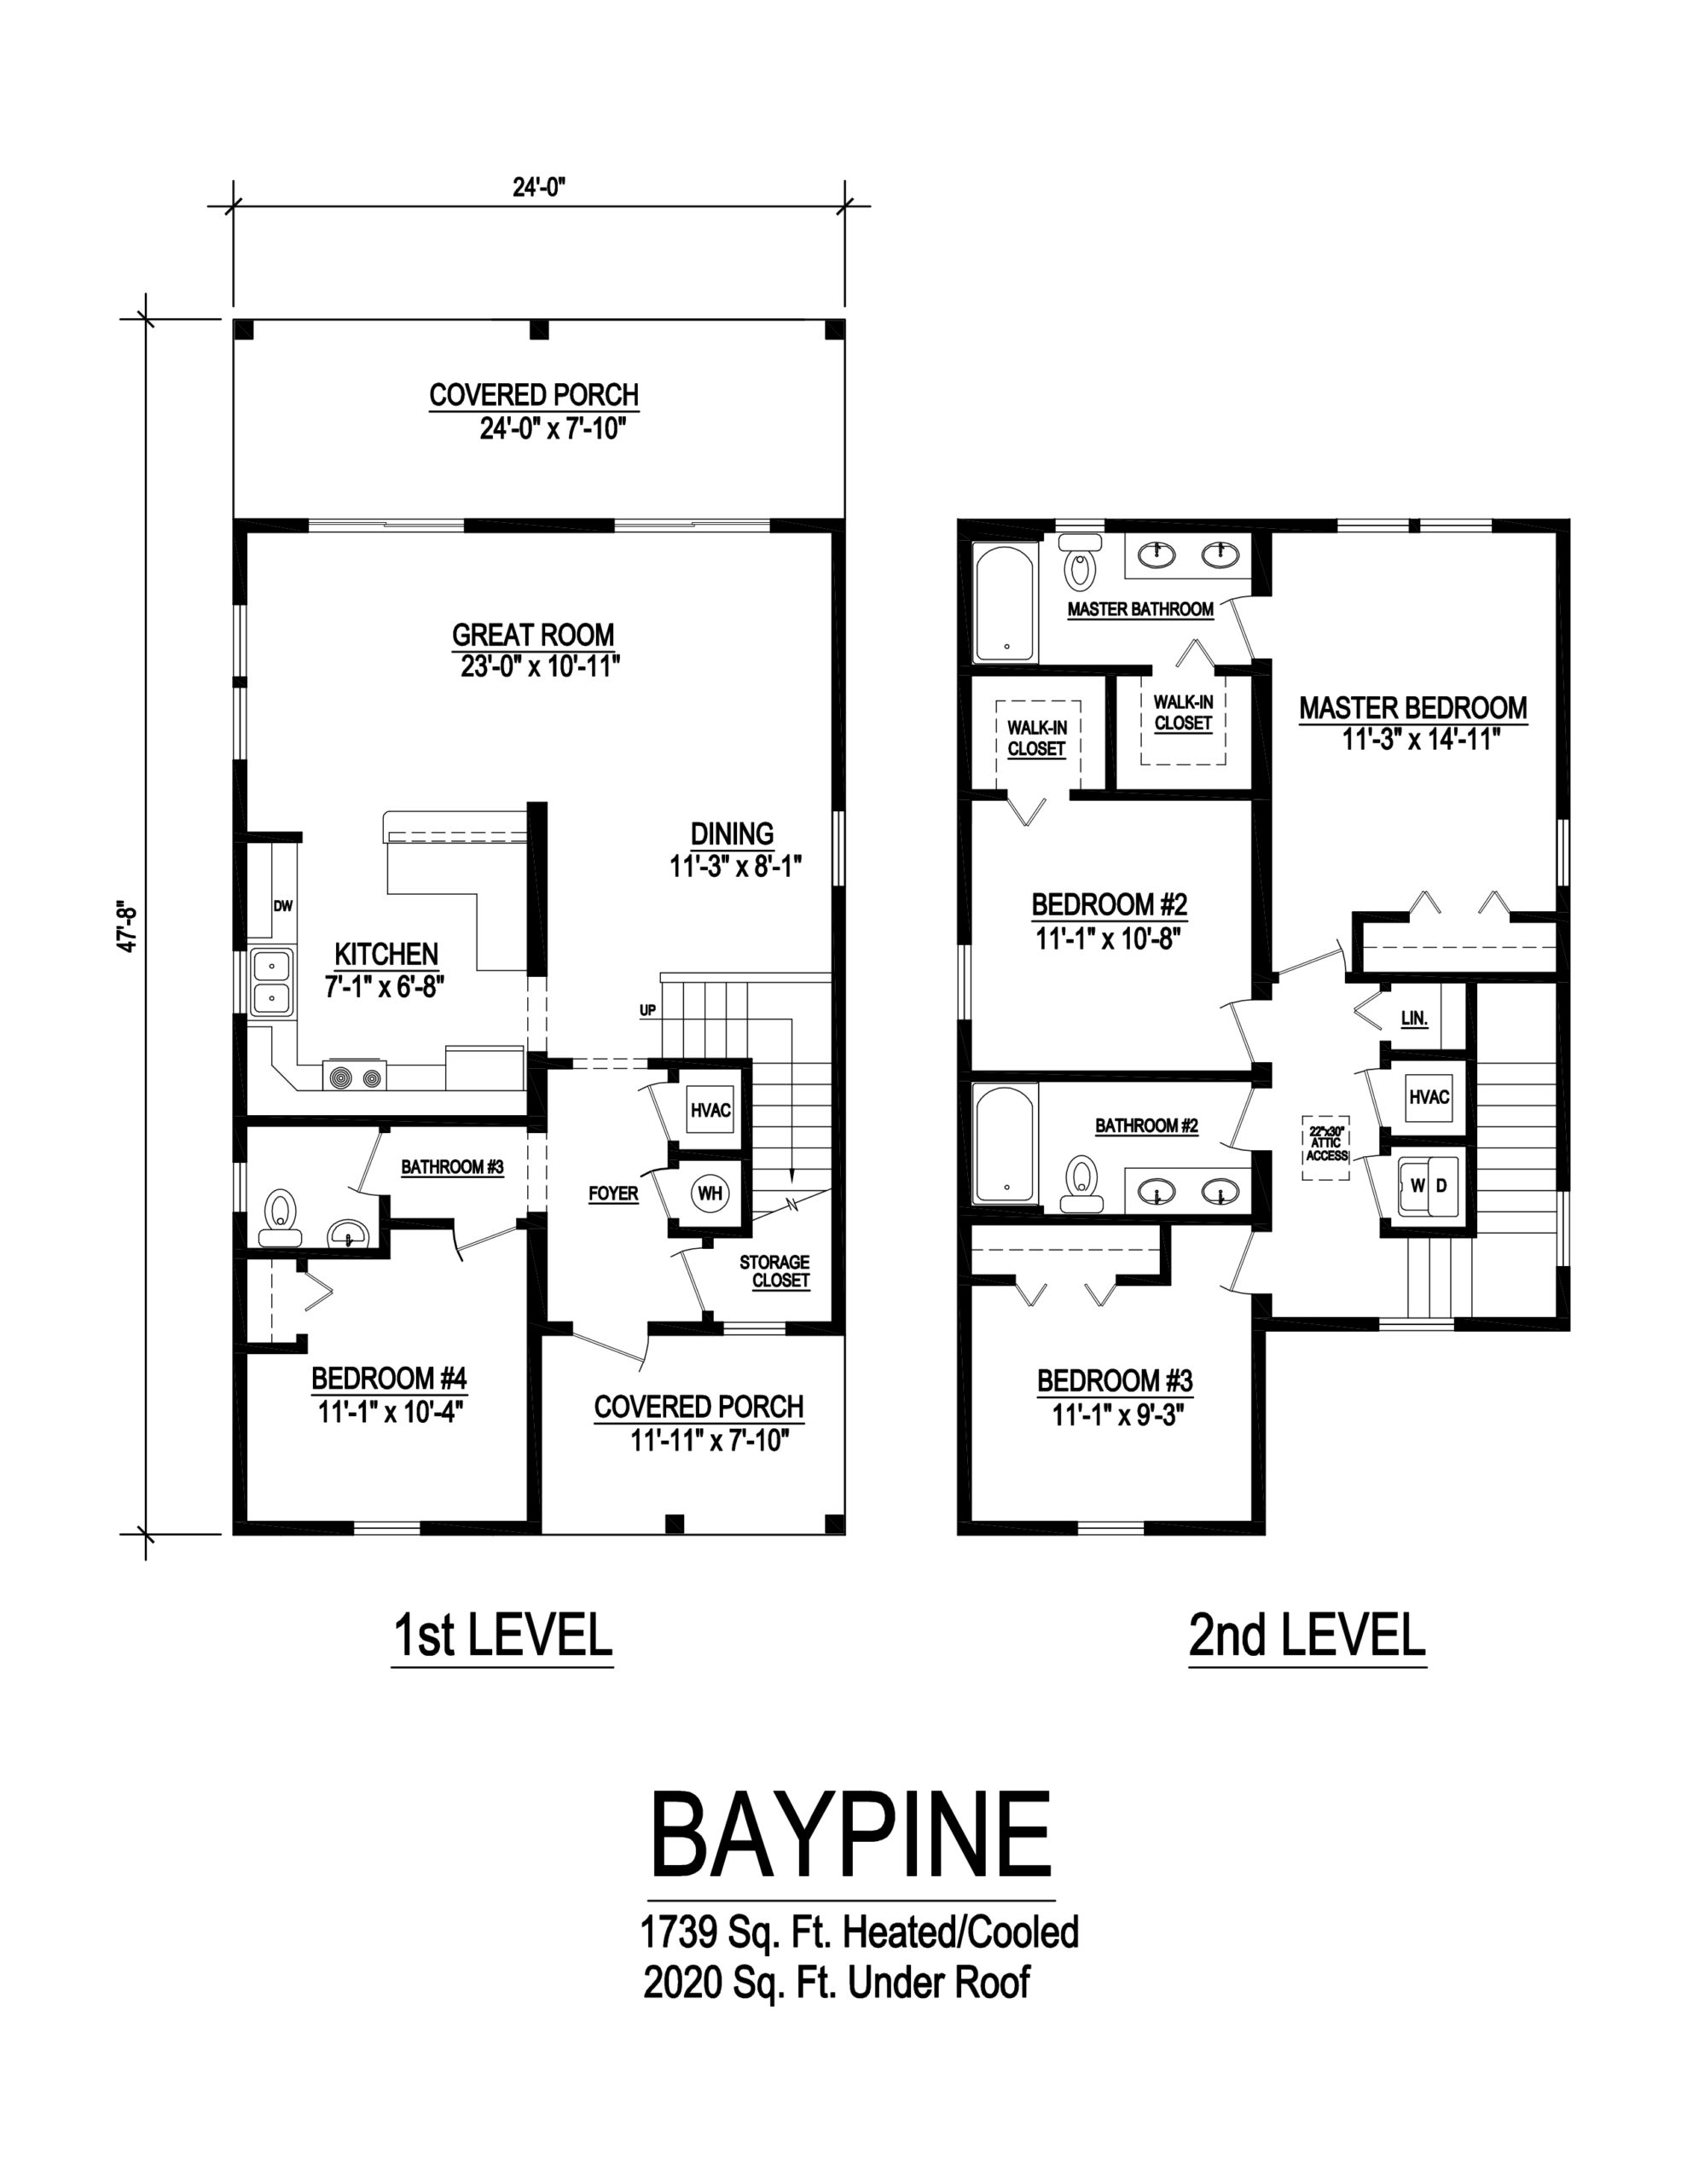 baypine modular home floorplan